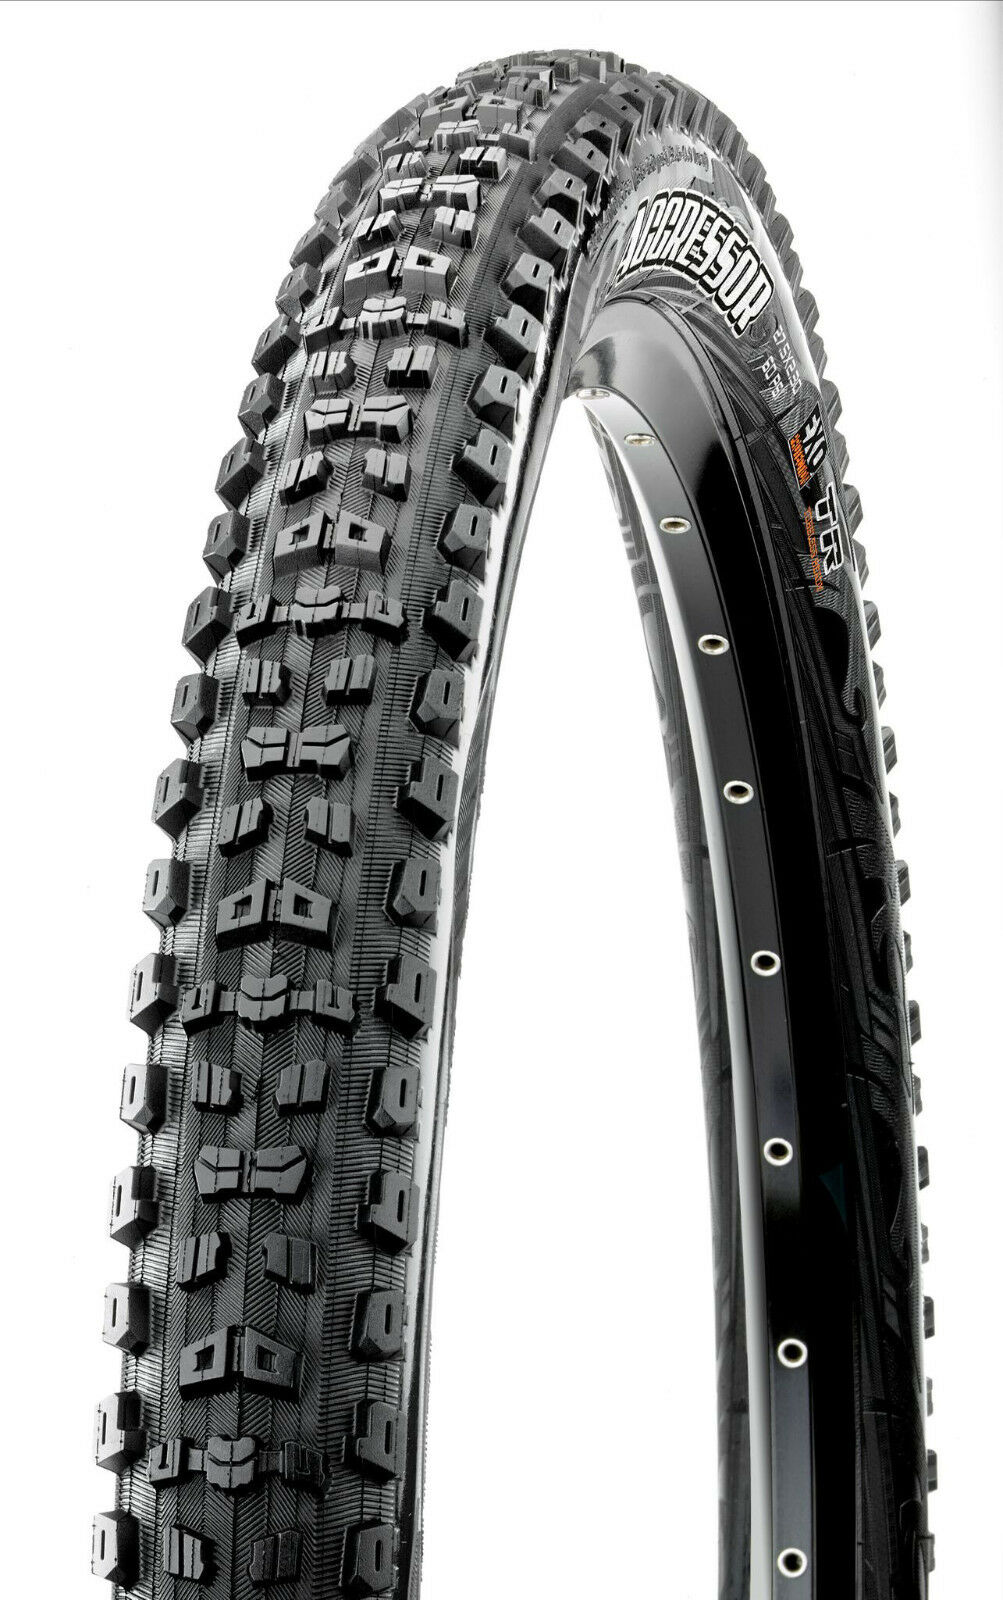 Maxxis Aggressor Tire 29 x 2.5   60tpi Dual Compound EXO Casing Tubeless Ready  online retailers